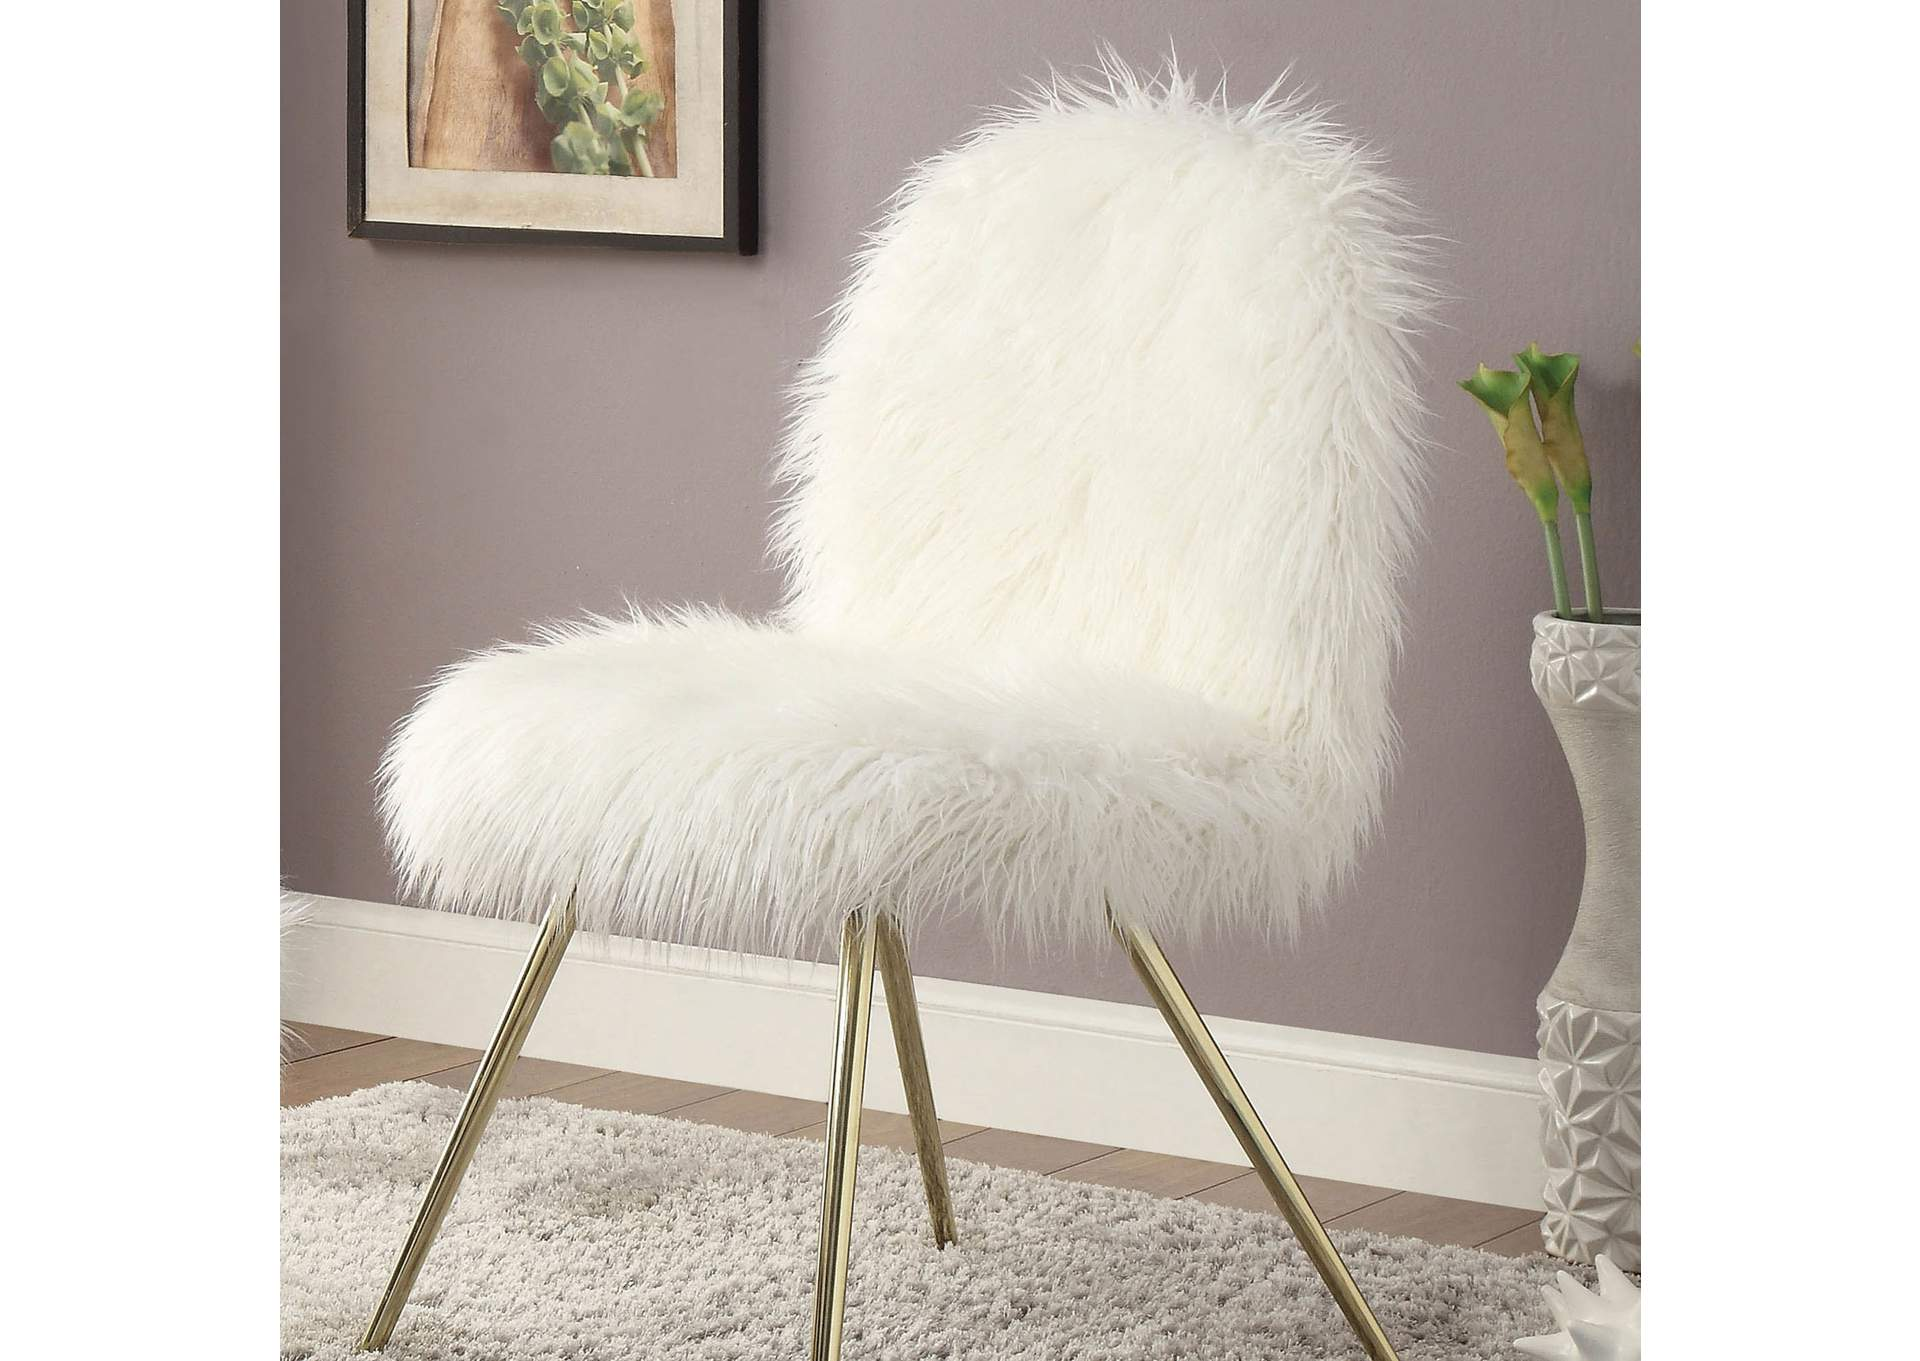 Pleasant Foothills Family Furniture Caoimhe White Gold Faux Fur Alphanode Cool Chair Designs And Ideas Alphanodeonline